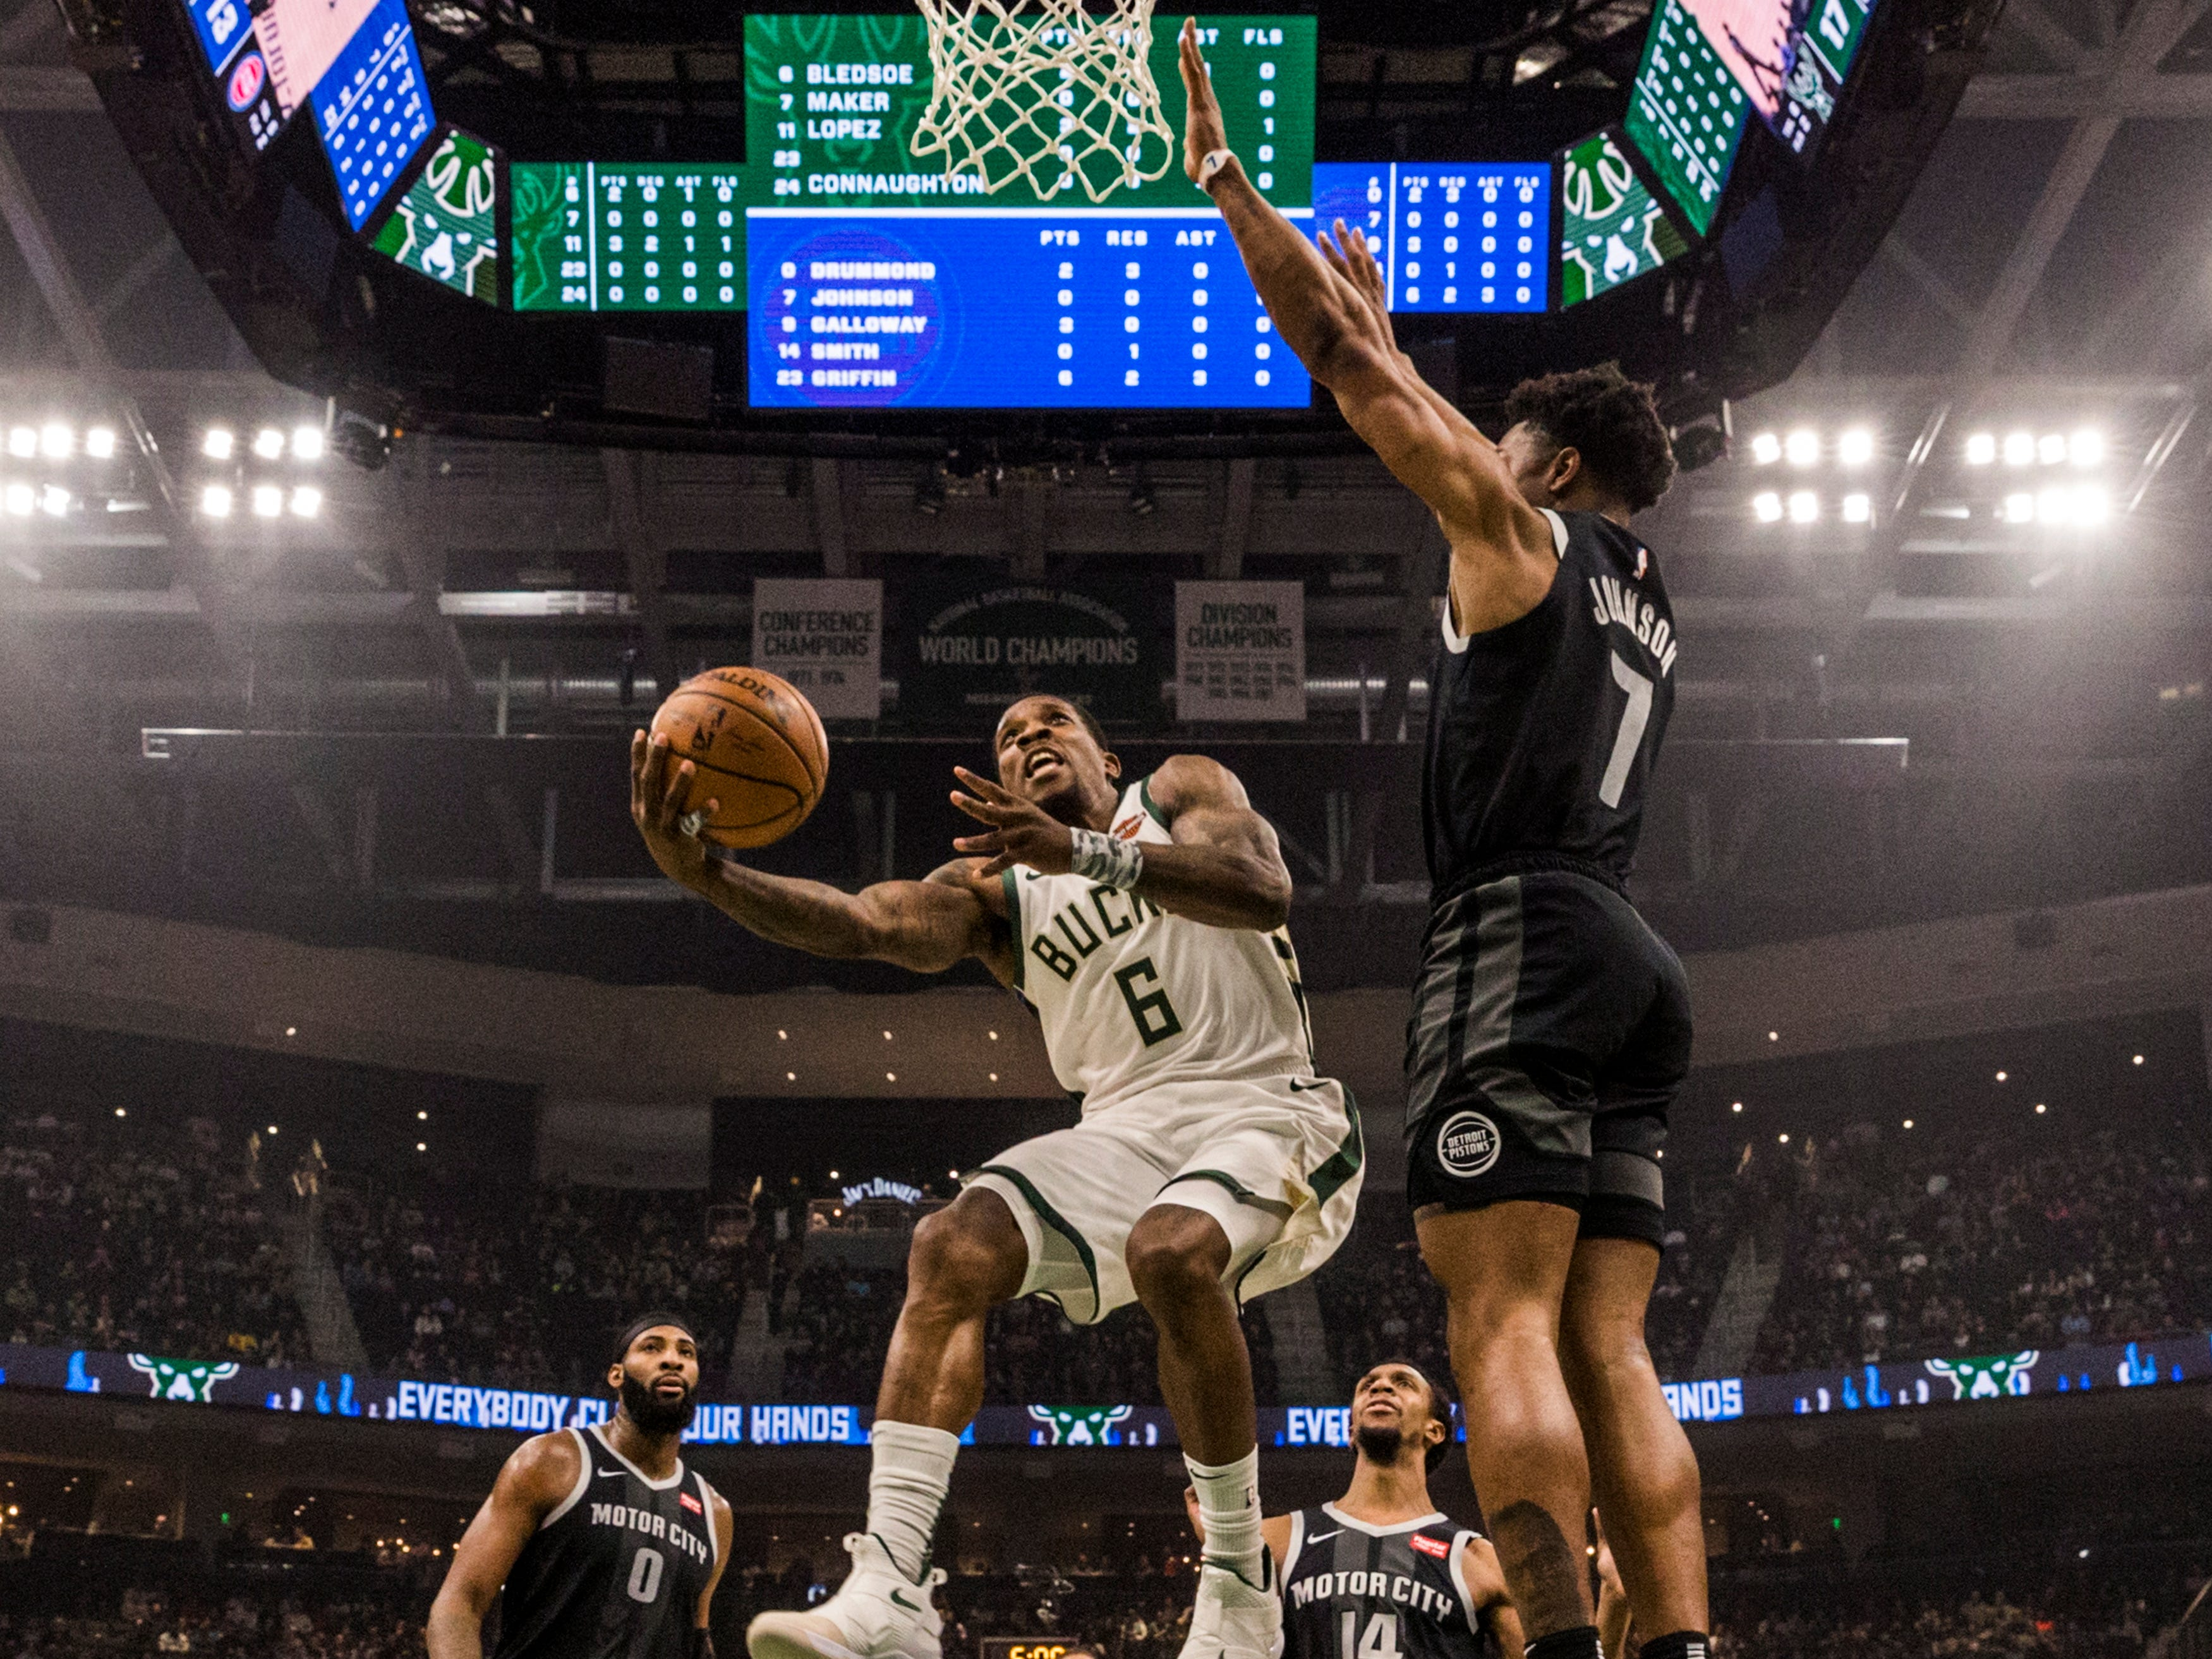 Eric Bledsoe of the Bucks ducks under the defense of the Pistons' Stanley Jackson as he goes up for two of his team-high 27 points on Monday night at Fiserv Forum.